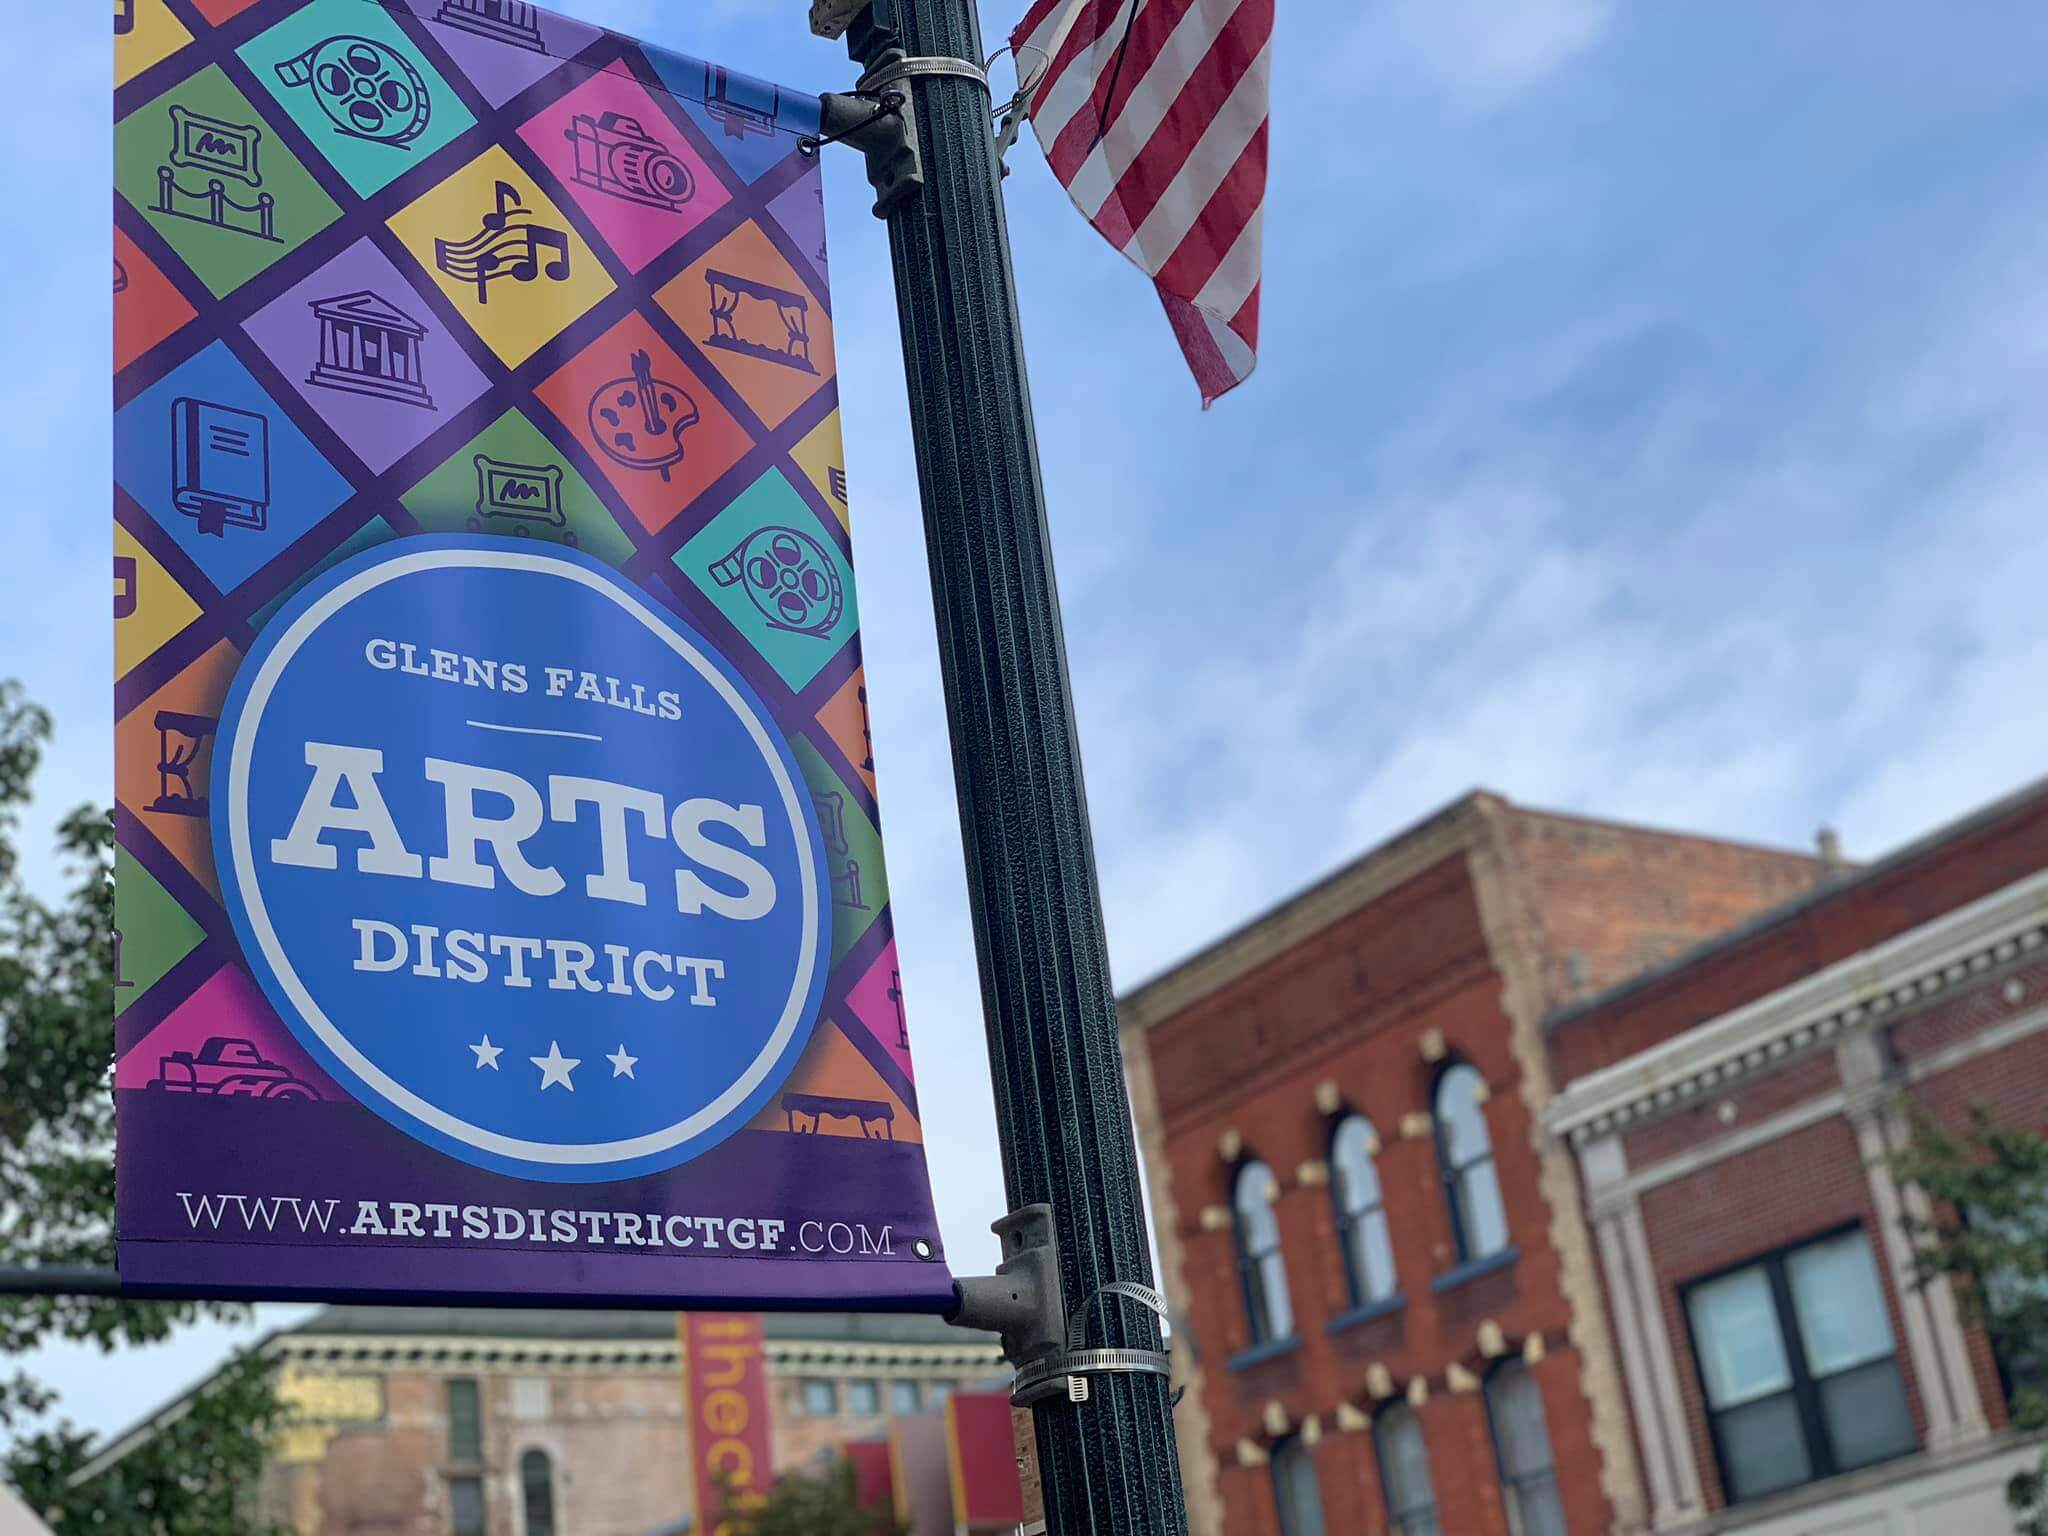 Arts District of Glens Falls Seeks to Brand City as Arts and Entertainment Destination